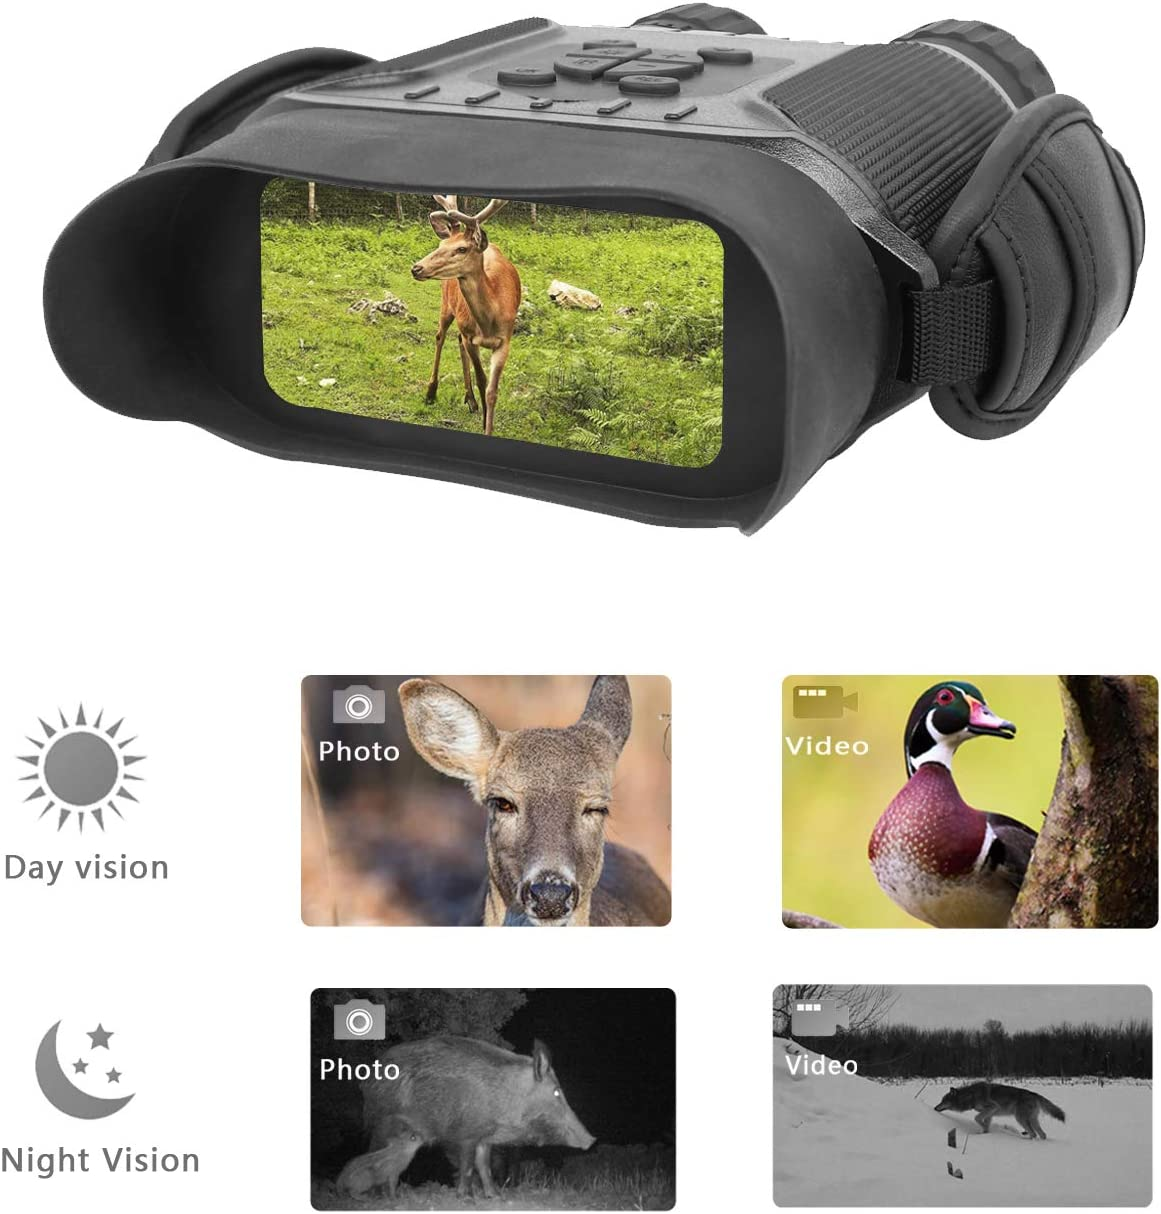 Guomu High Value Night Vision Binoculars NV900 with 4 LCD Widescreen, 4.5-22.5 x 40 Digital Infrared Dark Night Vision Scope Camera Take 5mp Photo 720p Video with Sound Up to 400m 1300ft